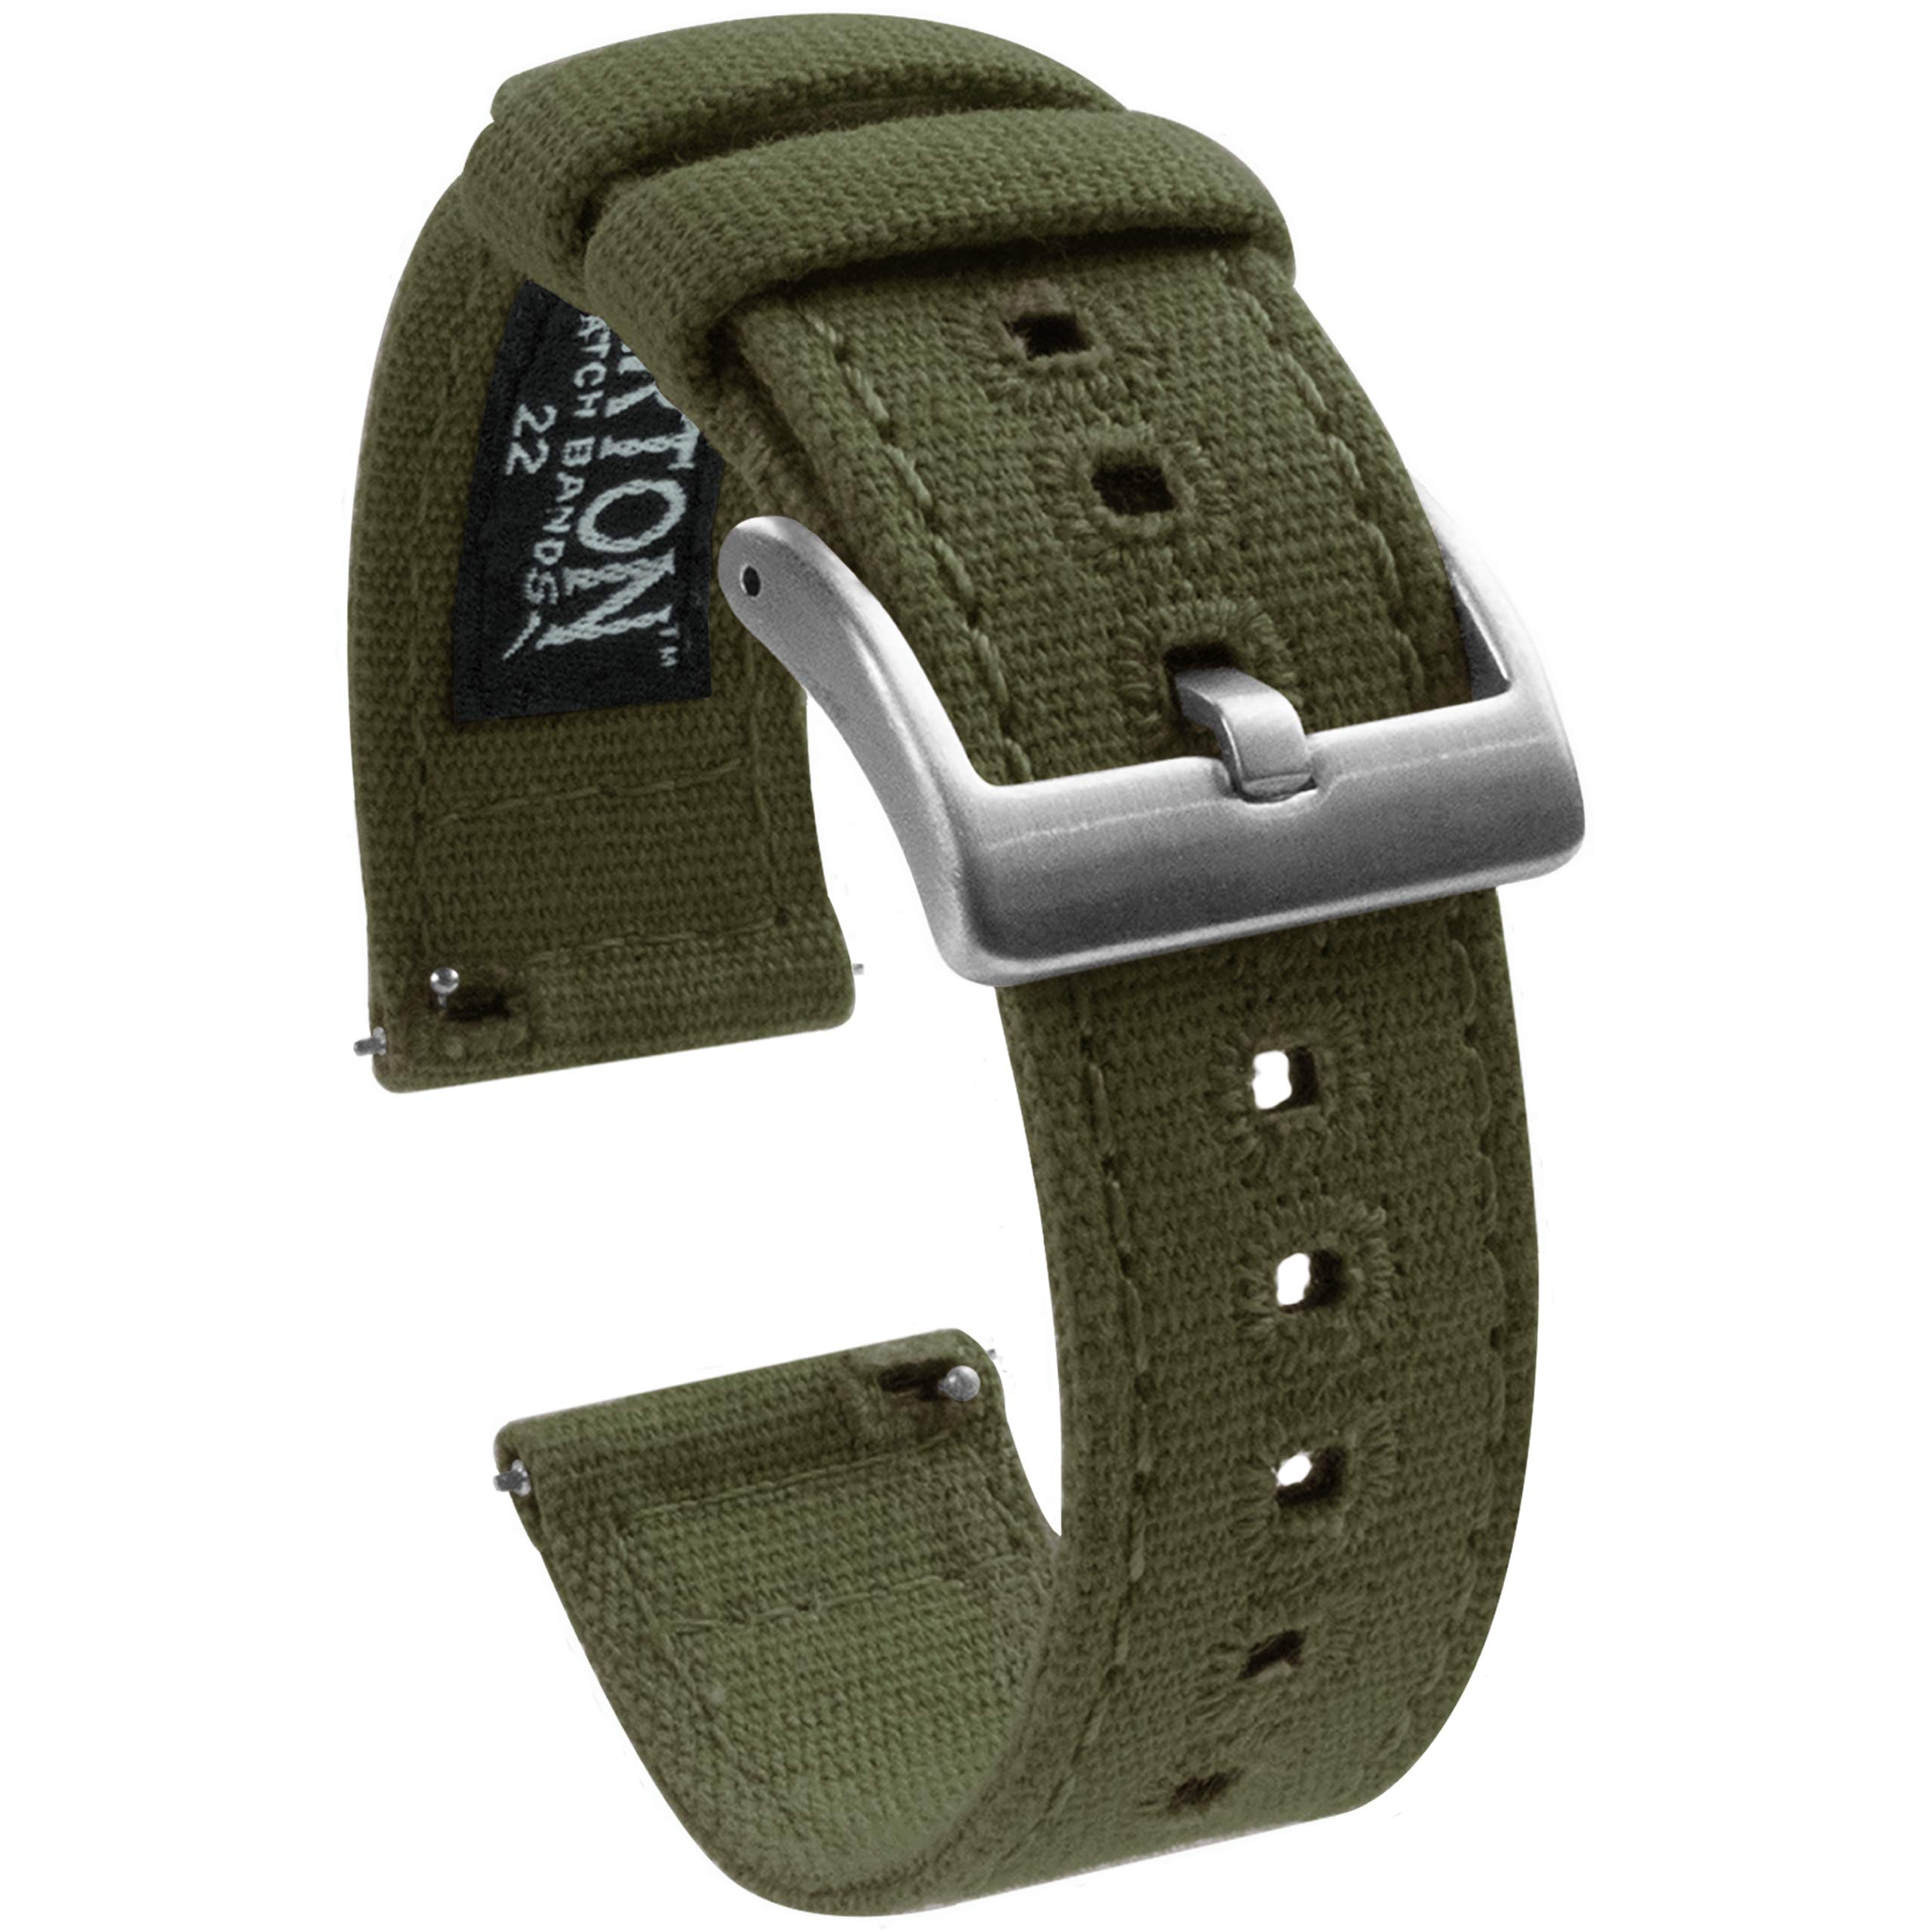 22mm Army Green - Barton Canvas Quick Release Watch Band Straps - Choose Color & Width - 18mm, 19mm, 20mm, 21mm, 22mm, or 23mm by Barton Watch Bands